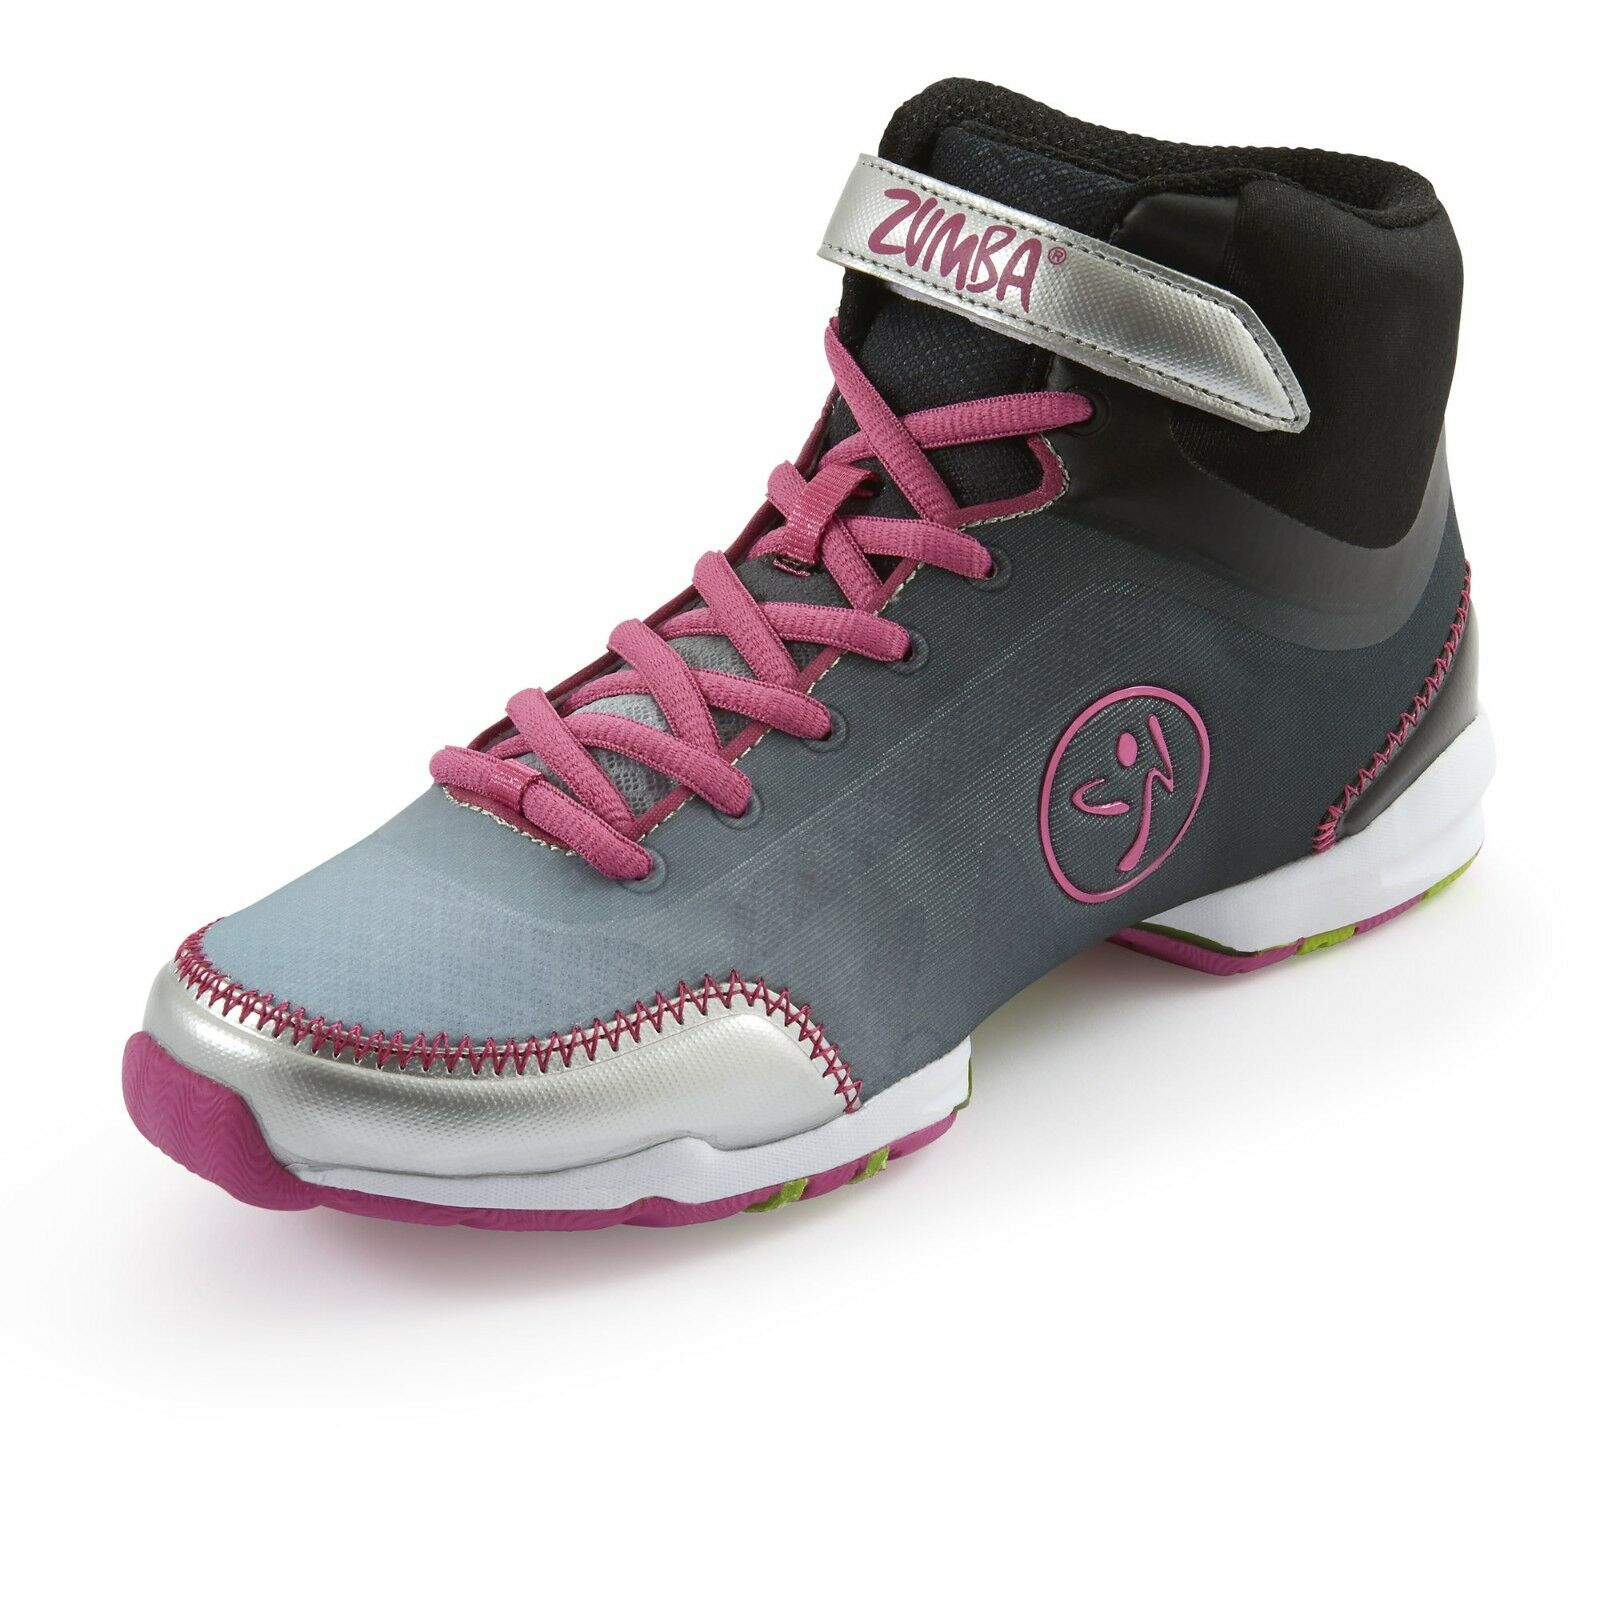 ZUMBA HIGH TOP SHOES TRAINERS--Z Slide lets U Dance 6,7,7.5,8,8.5,9 ANY Surface 6,7,7.5,8,8.5,9 Dance 4a4399